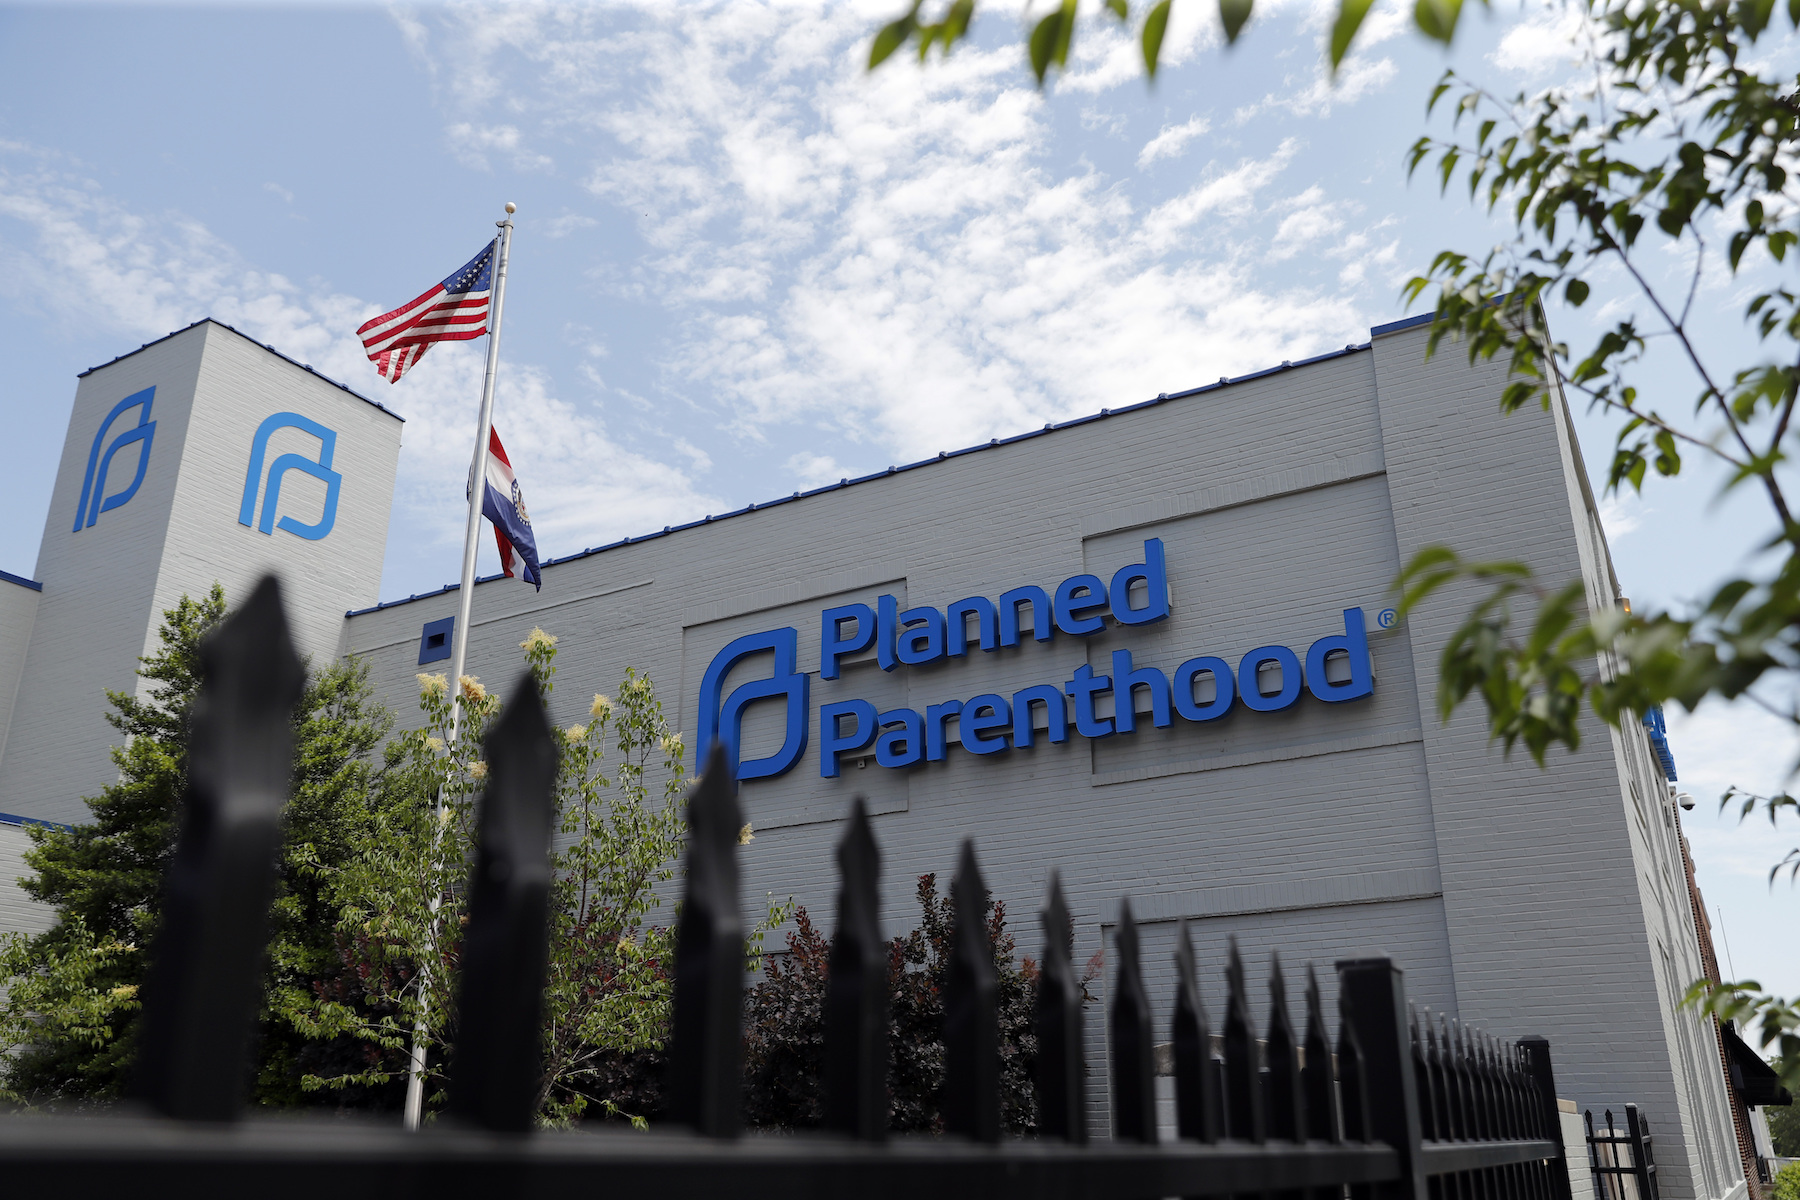 Planned Parenthood May Lose Tens of Millions in Funding on Monday Thanks to Trump - VICE